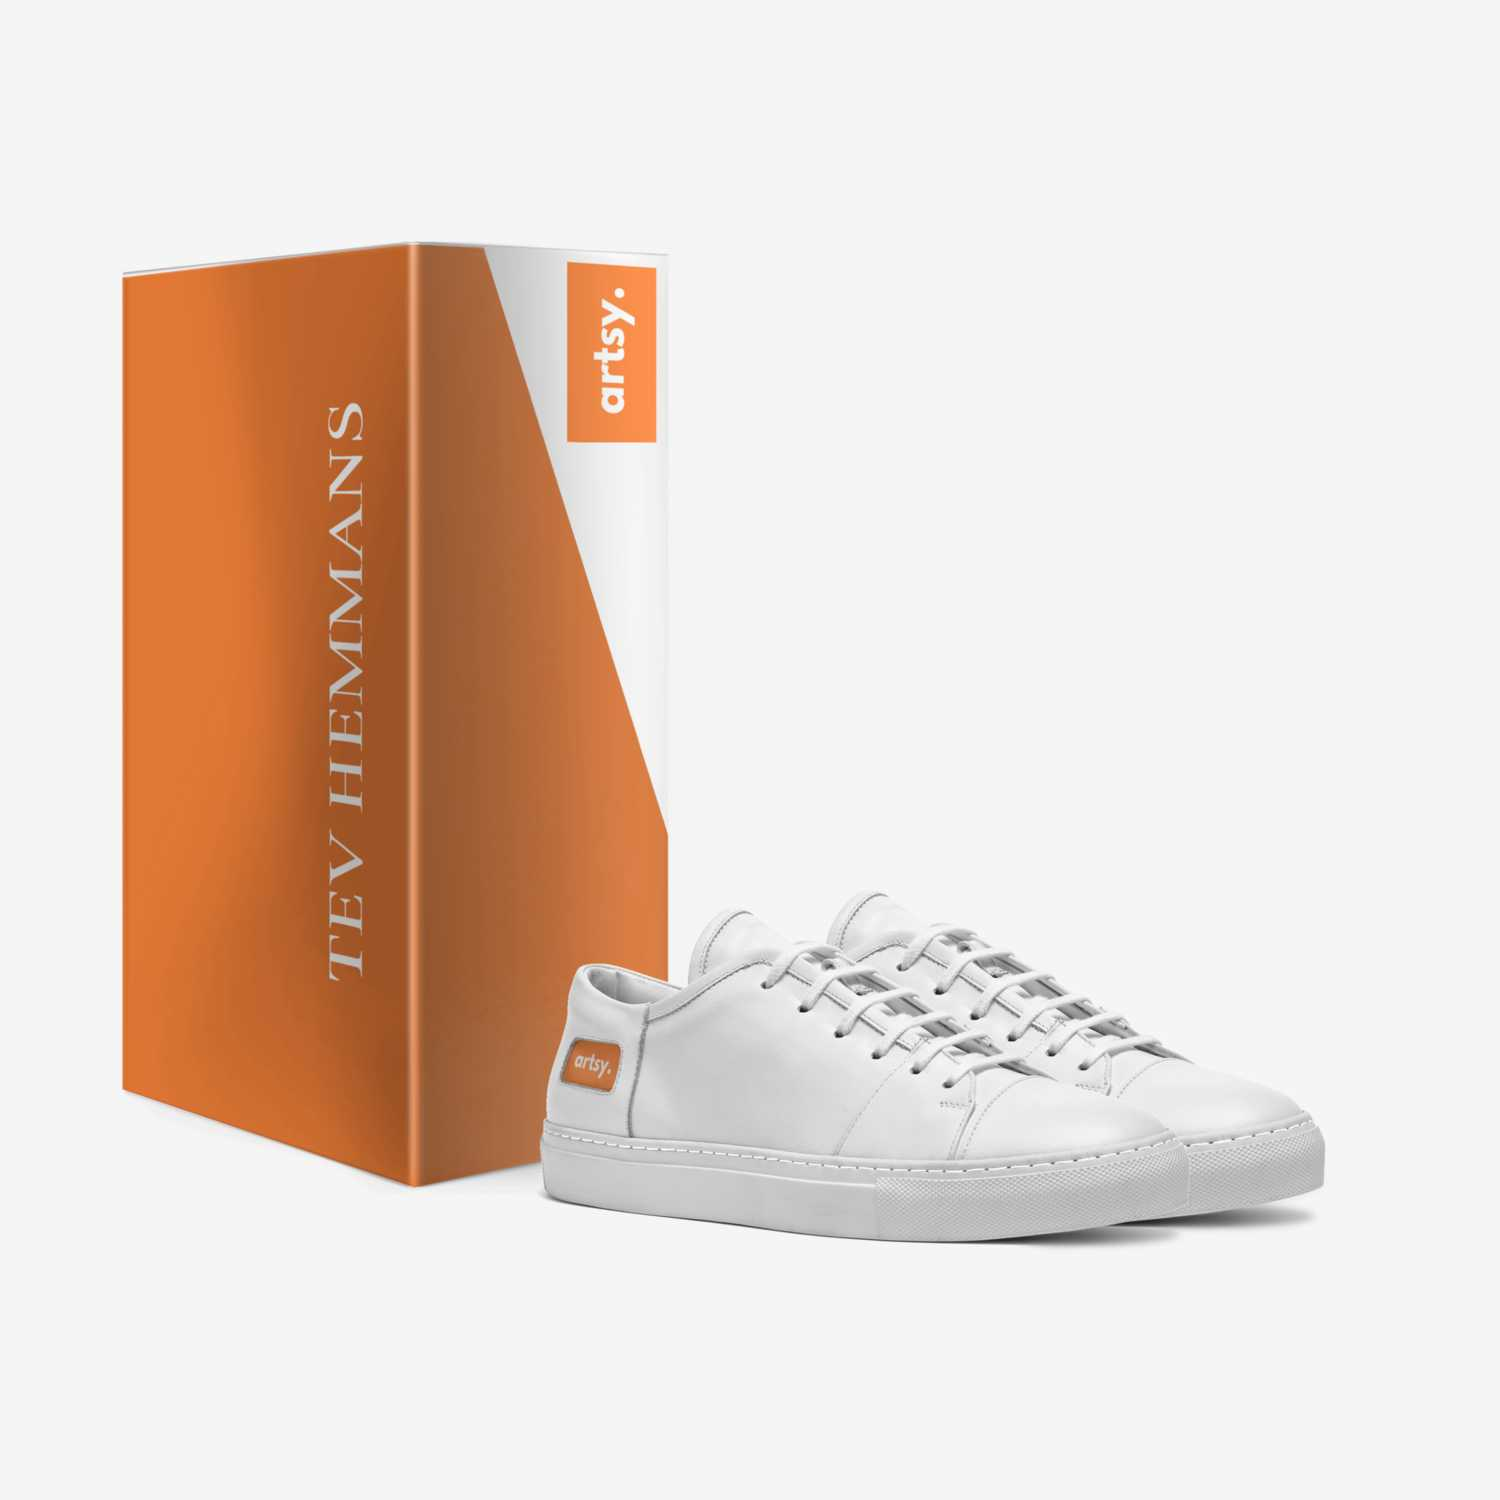 Artsy Classic I custom made in Italy shoes by Tev Hemmans | Box view